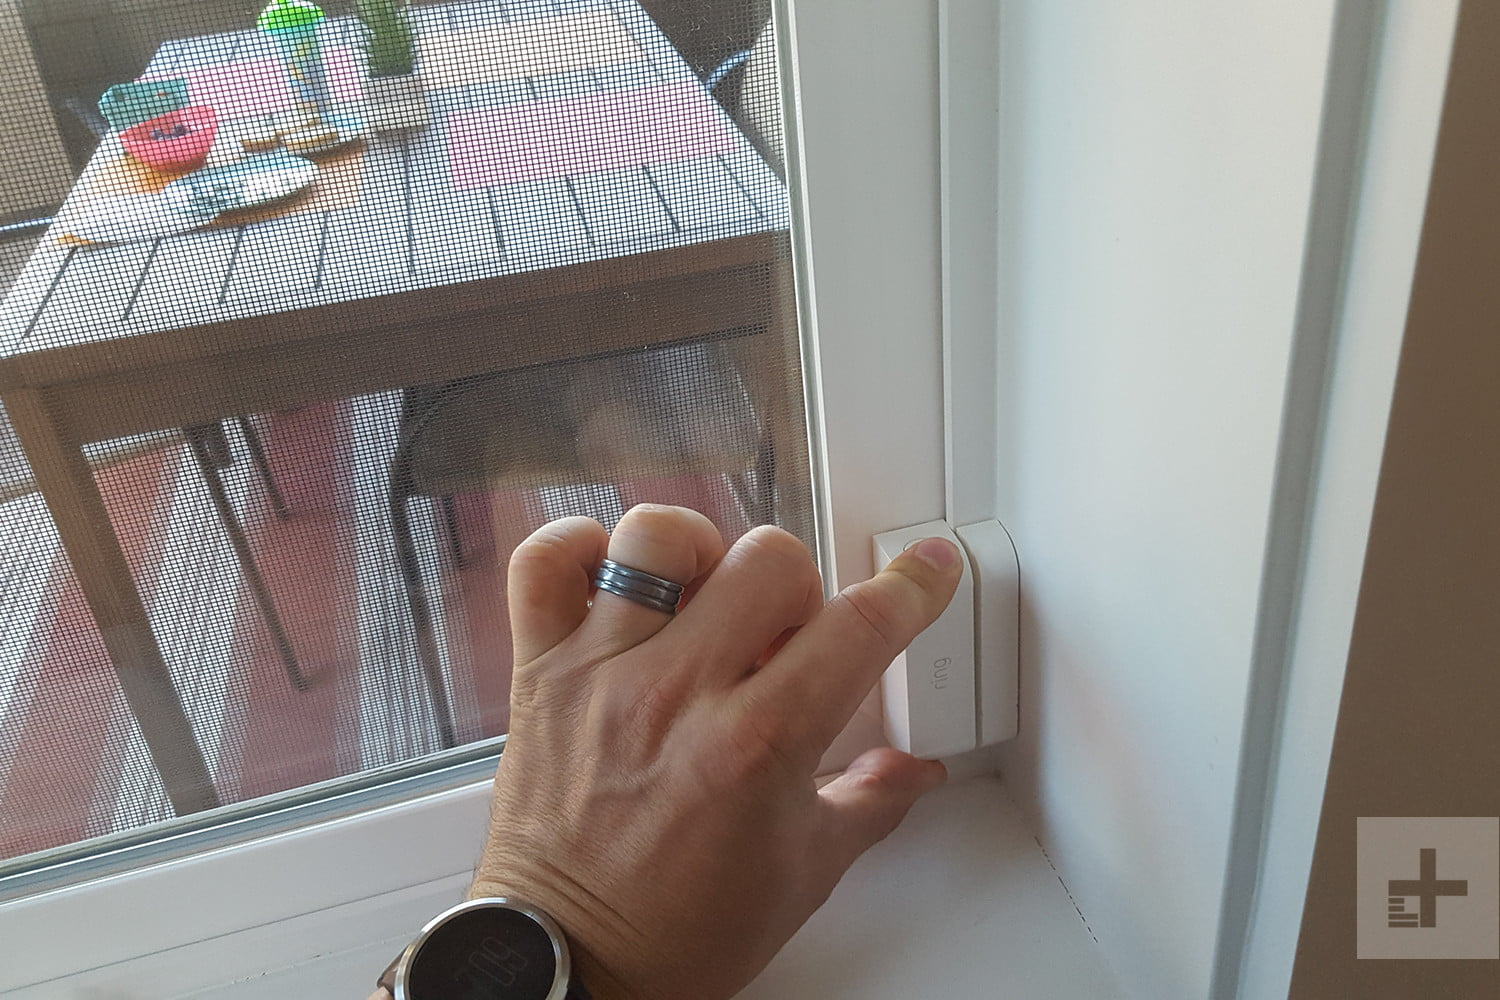 Ring Alarm Review: A Solid, Affordable Home Monitoring